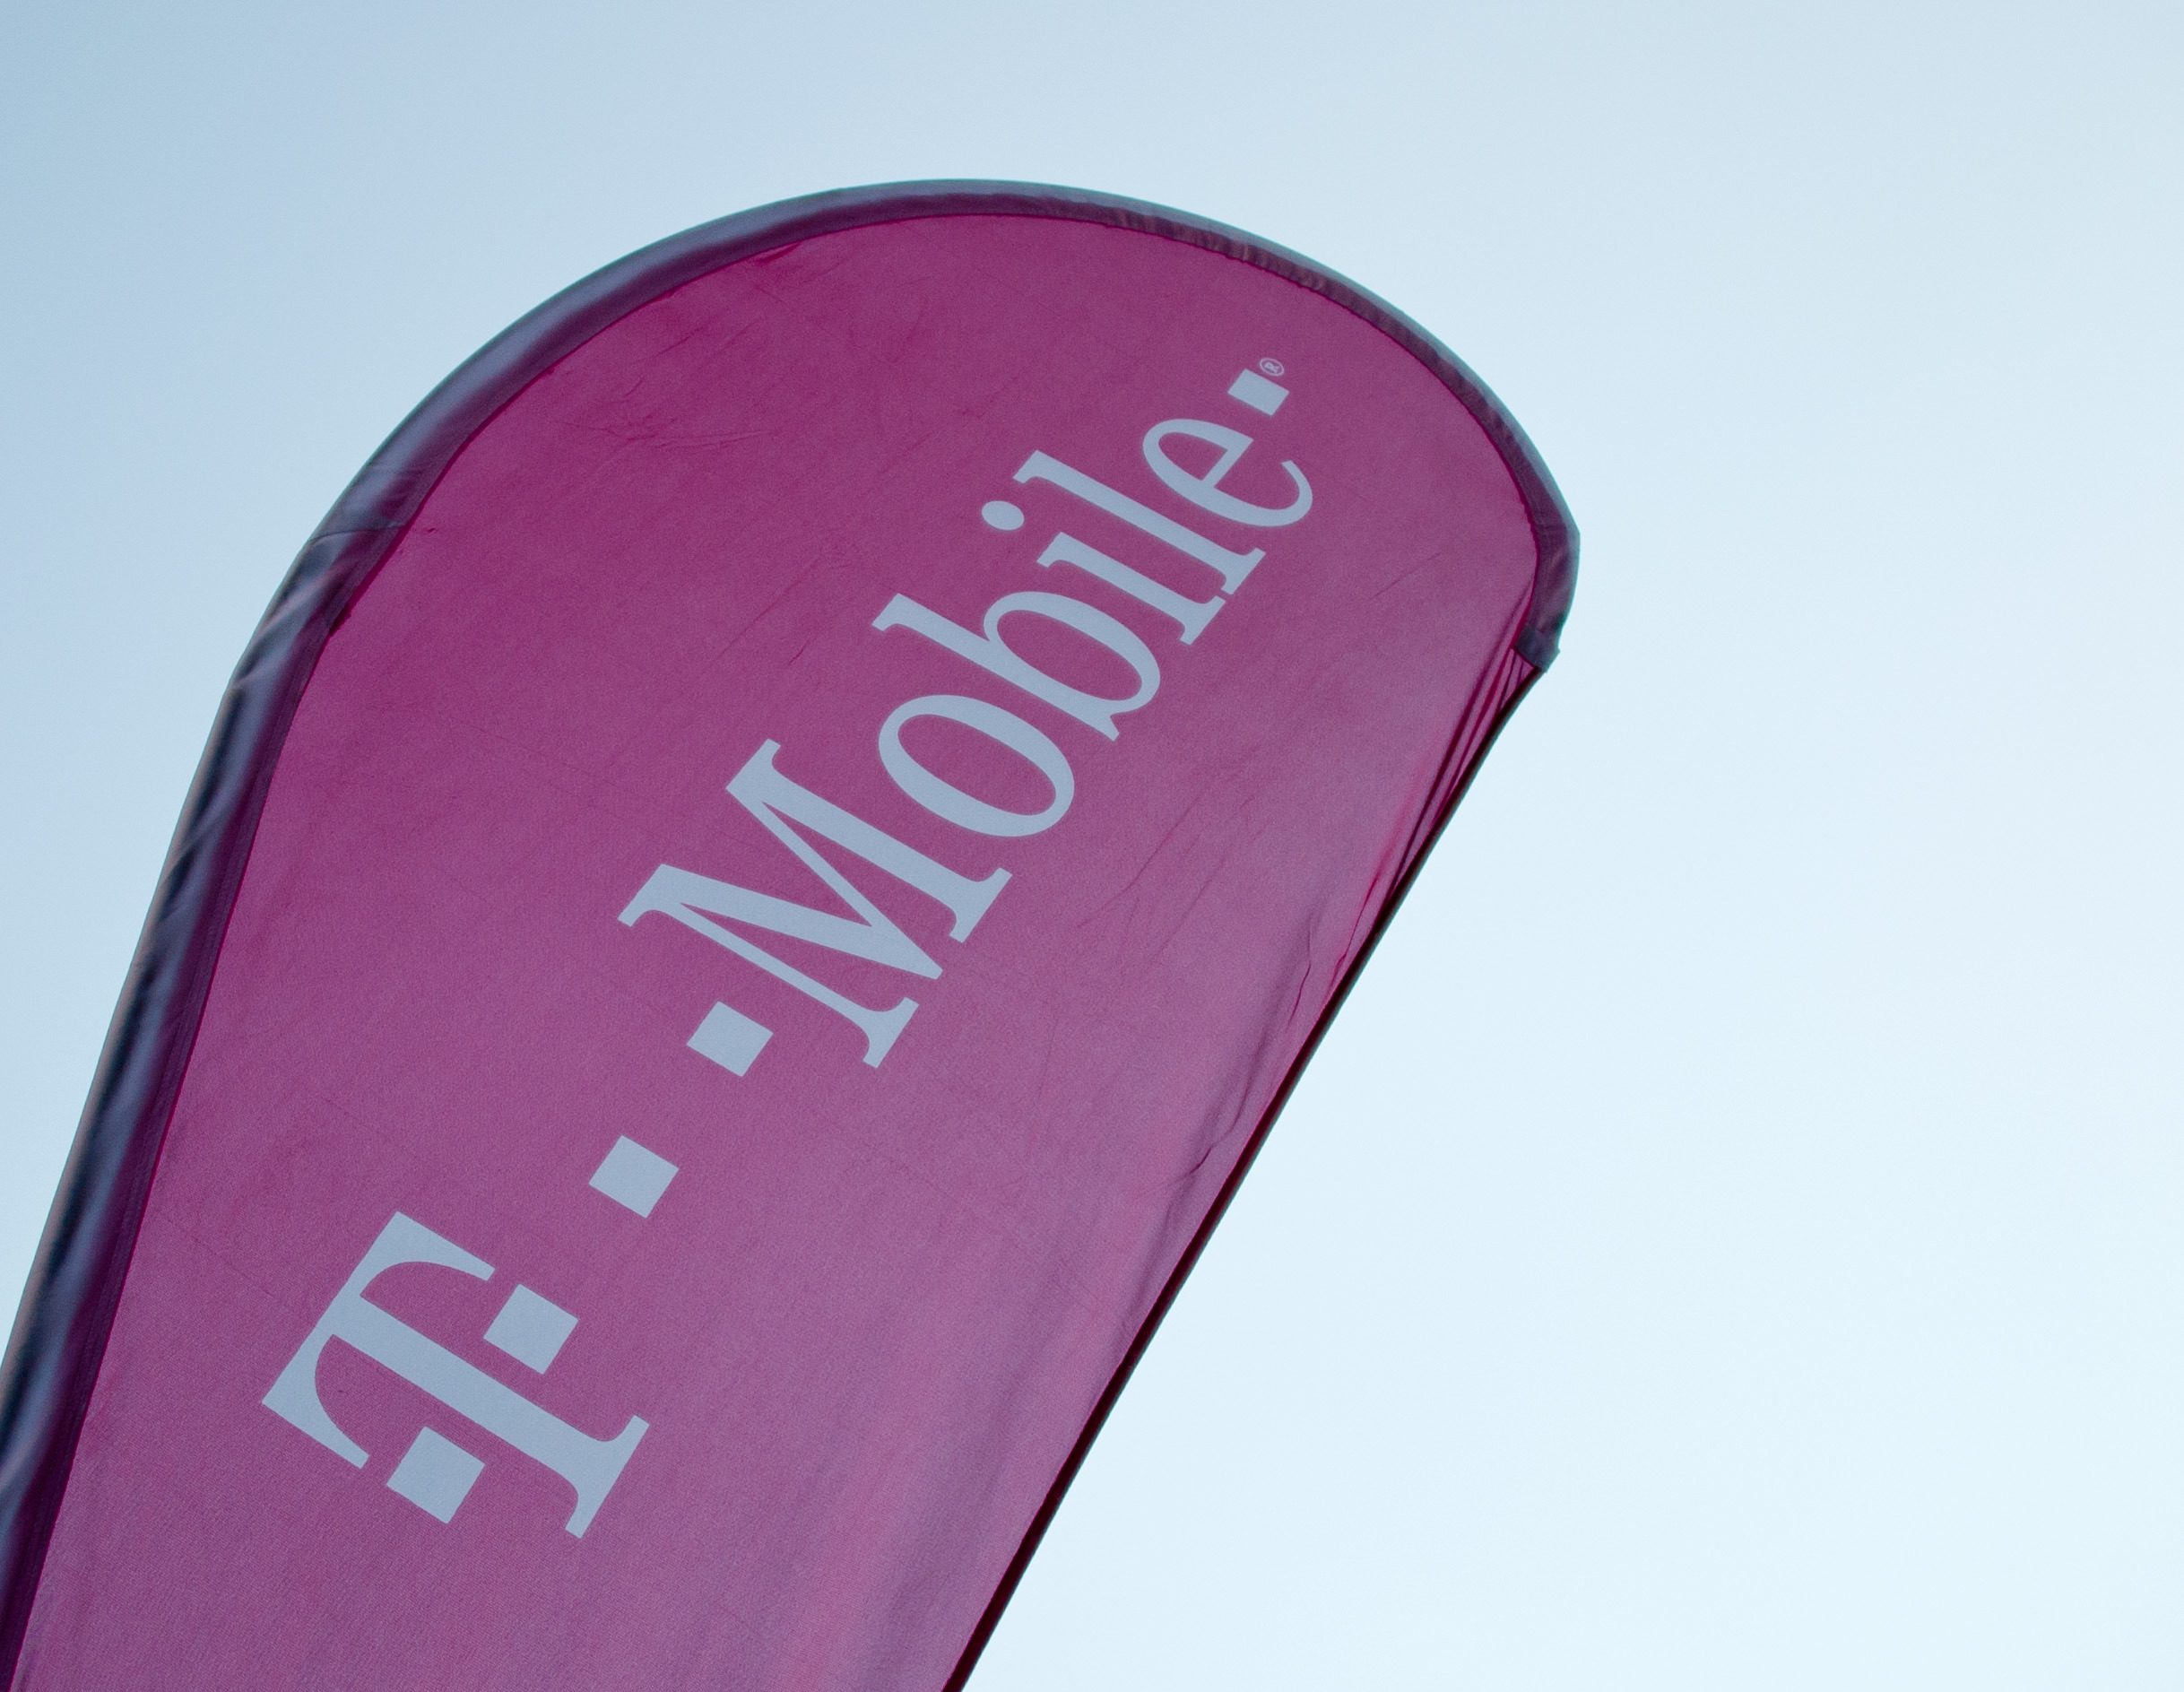 A T-Mobile banner in New York City on Sep. 27, 2014.